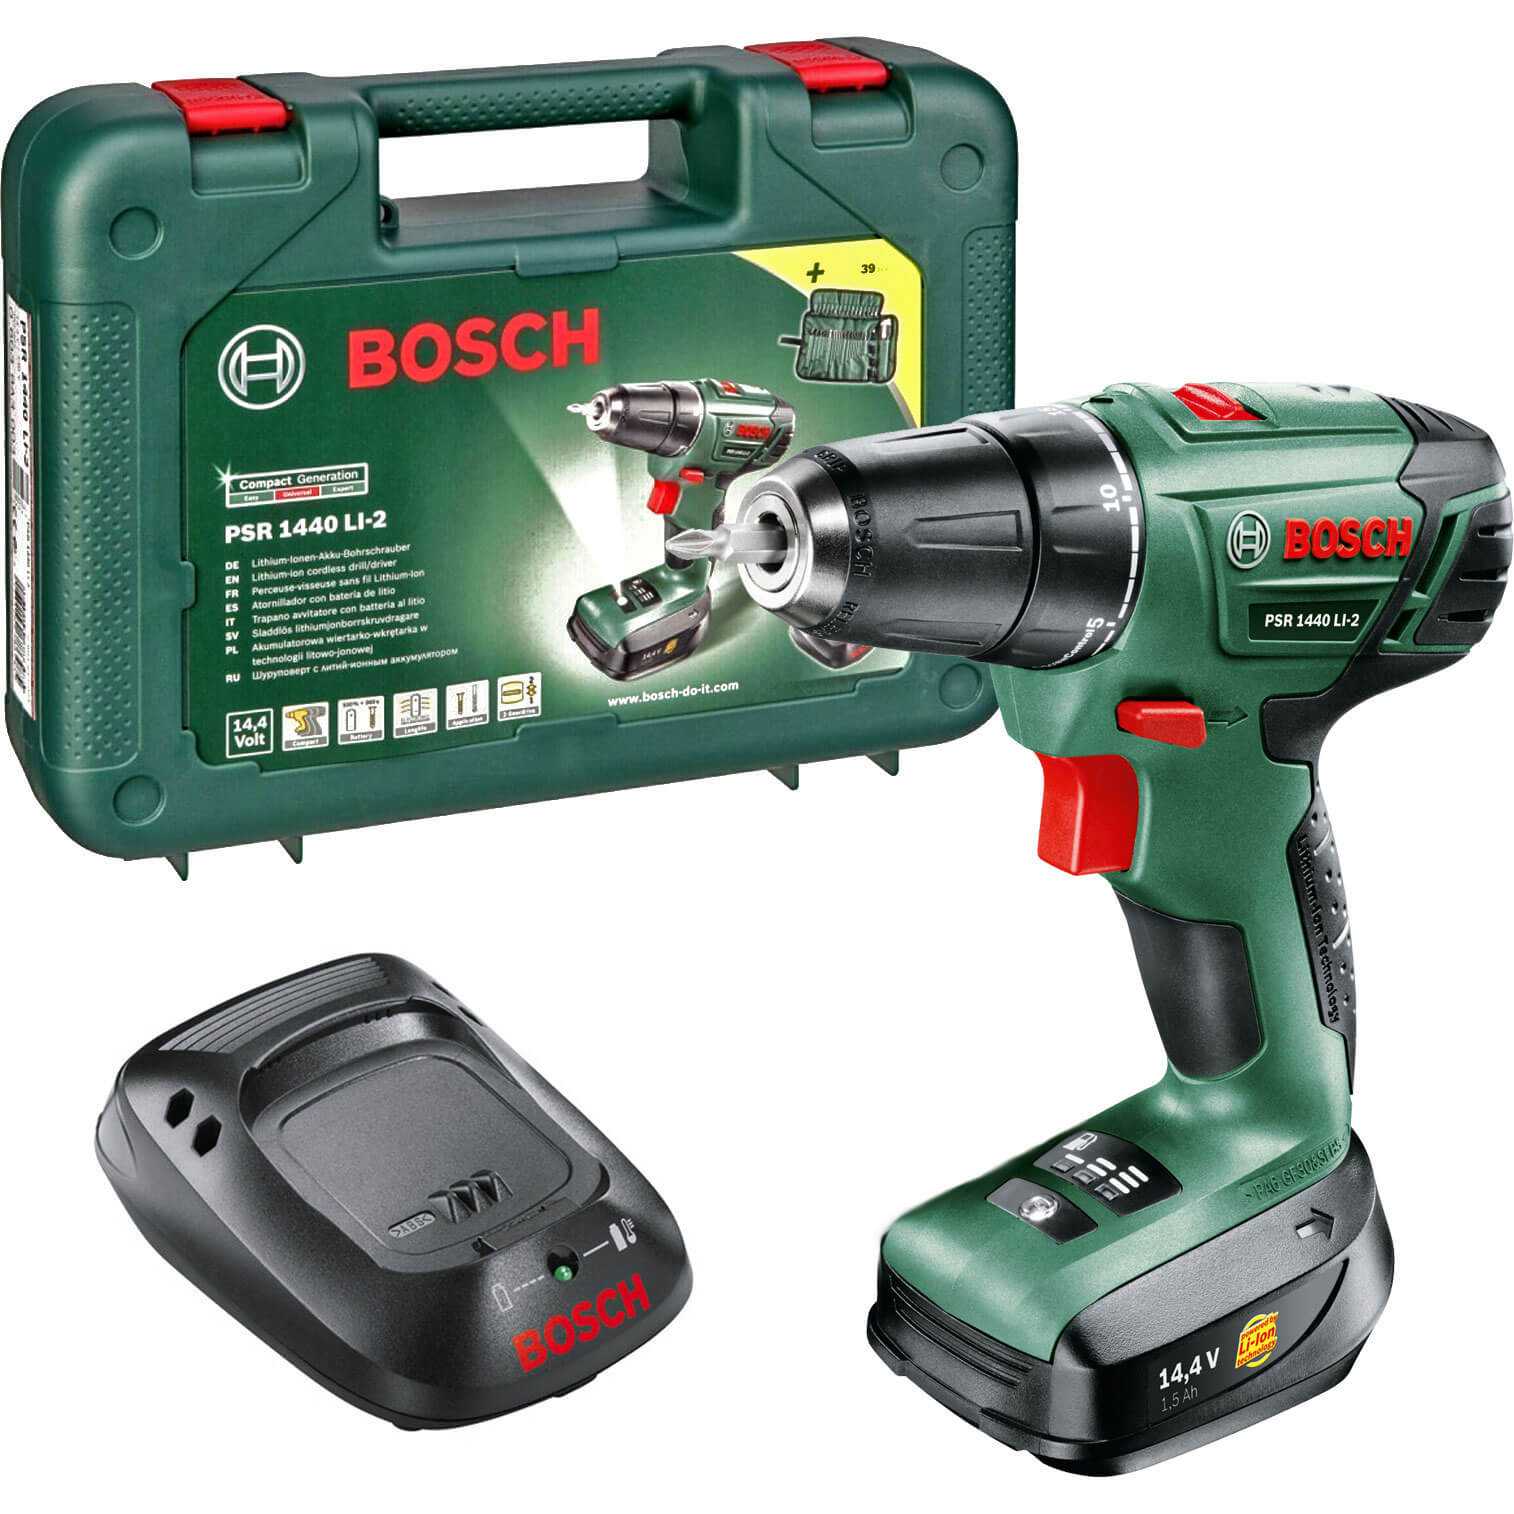 Bosch POWER4ALL PSR 1440 LI-2 14.4v Cordless 2 Speed Drill Driver with 1 Lithium Ion Battery 1.5ah